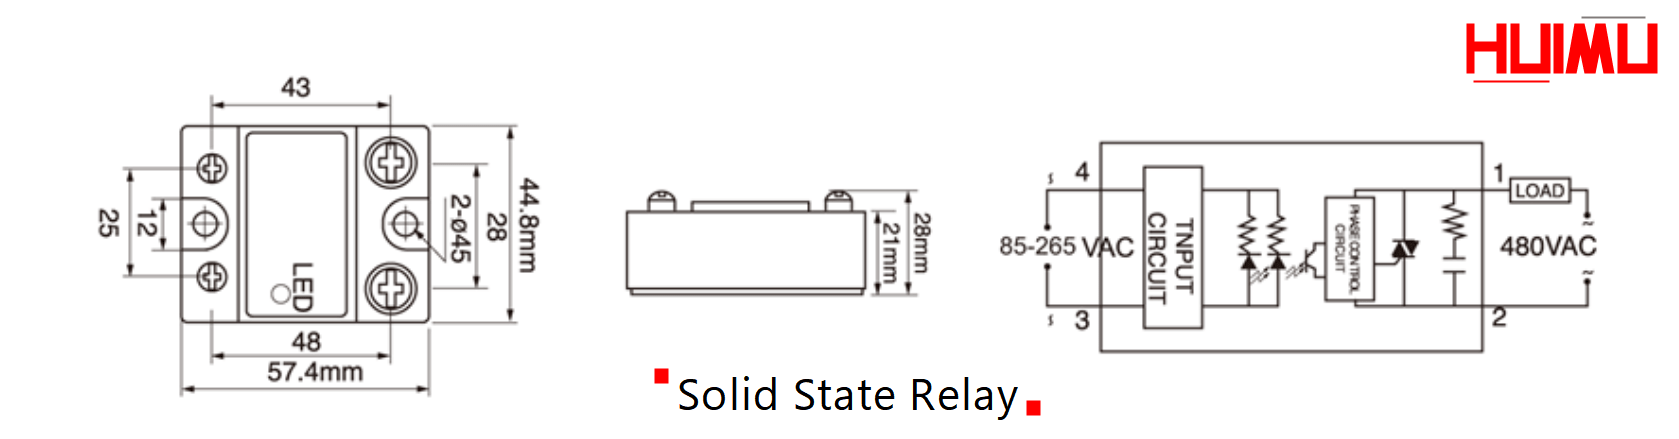 Solid-state relay diagram